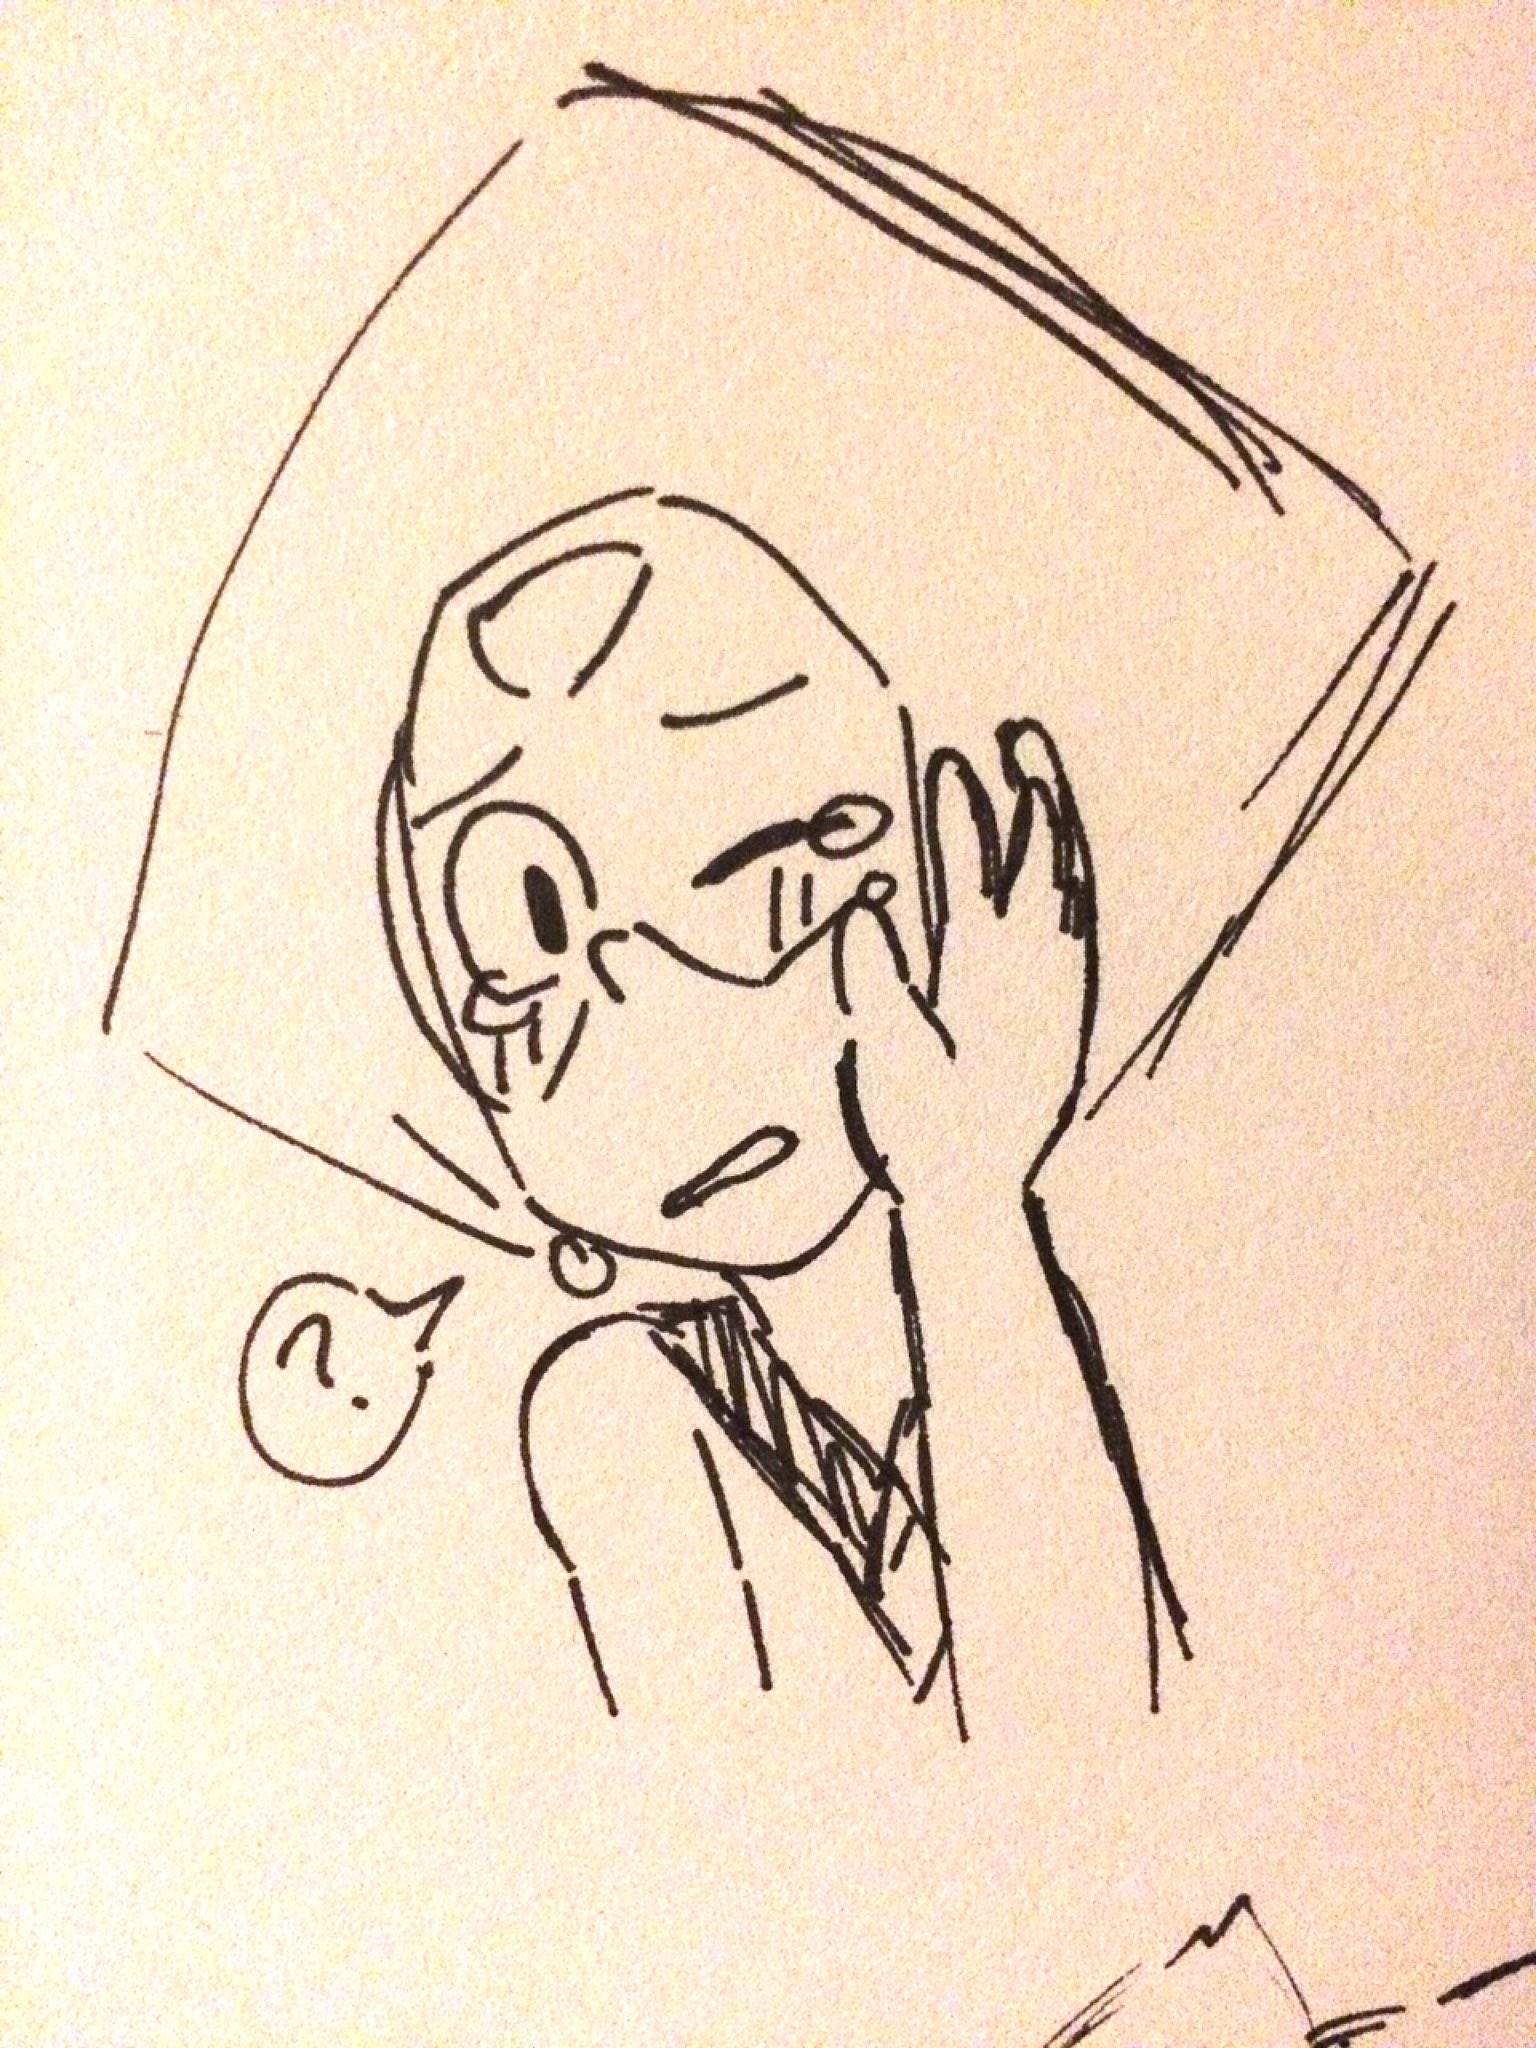 """""""""""I'm just missin Homeworld again Lazuli! Nothing to worry about!"""" ... """"Aha..ah.. why won't the tears stop?.. Weird!"""""""""""